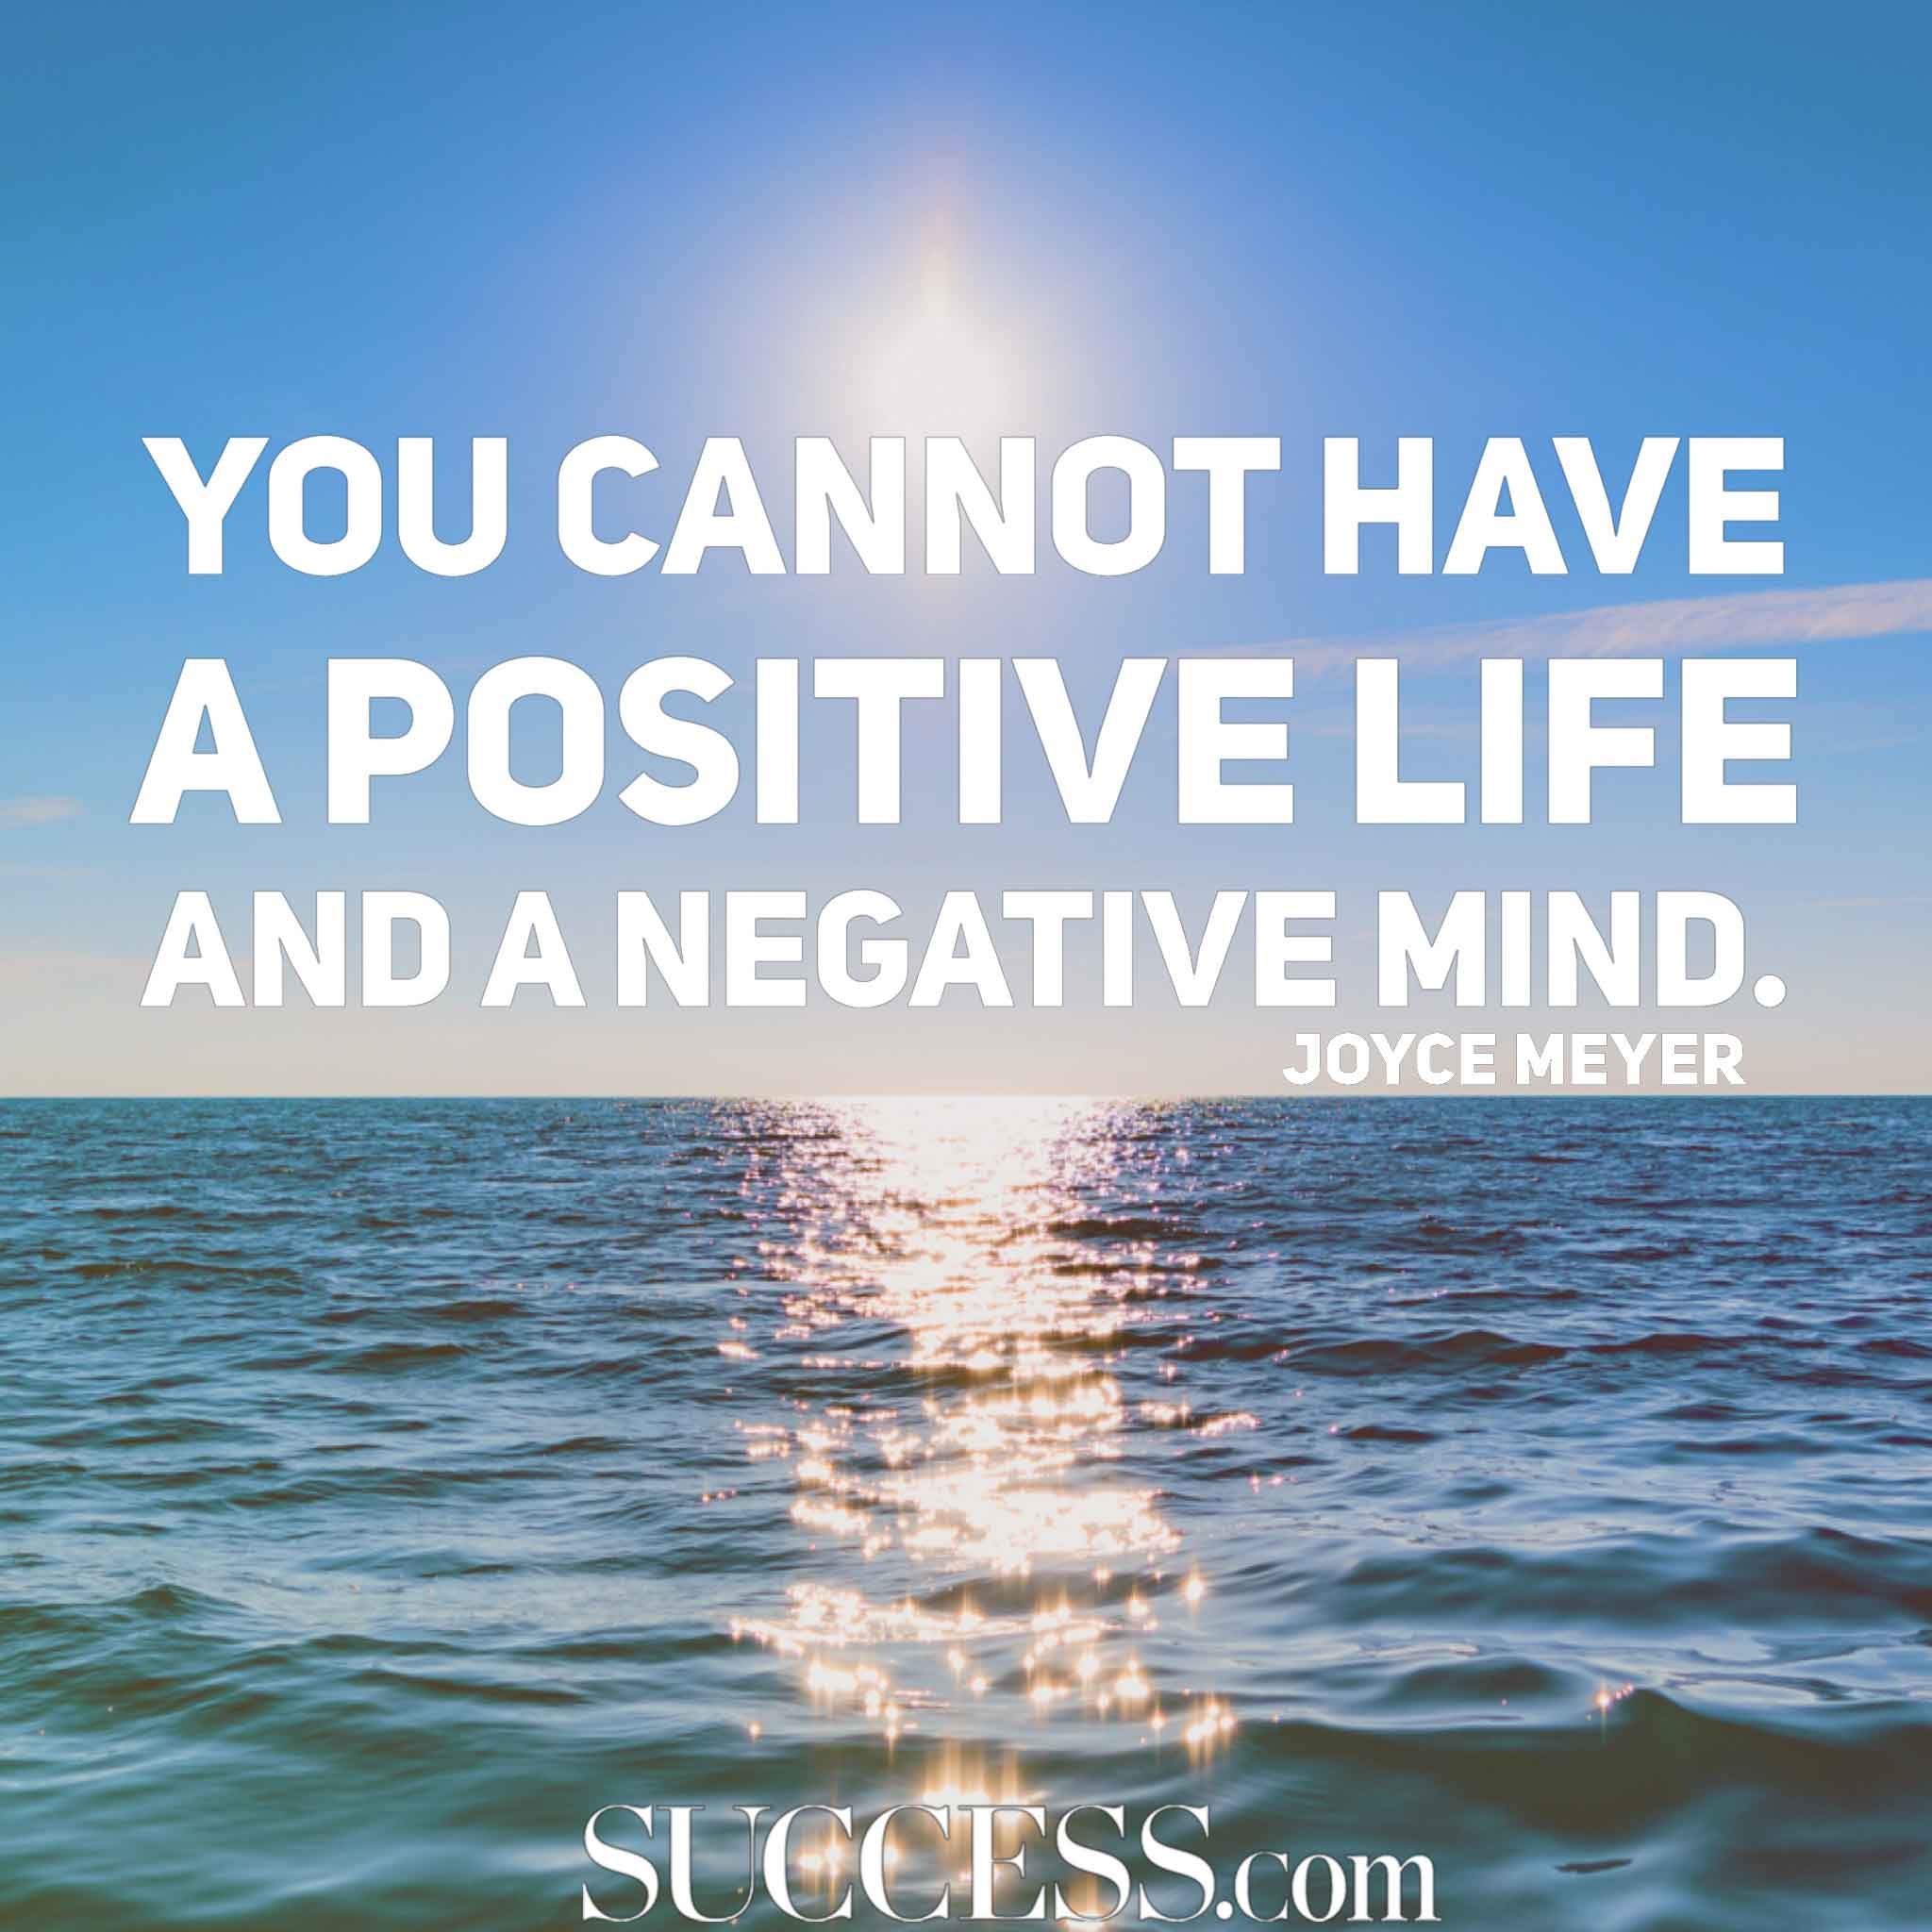 13 Quotes For A Positive Life